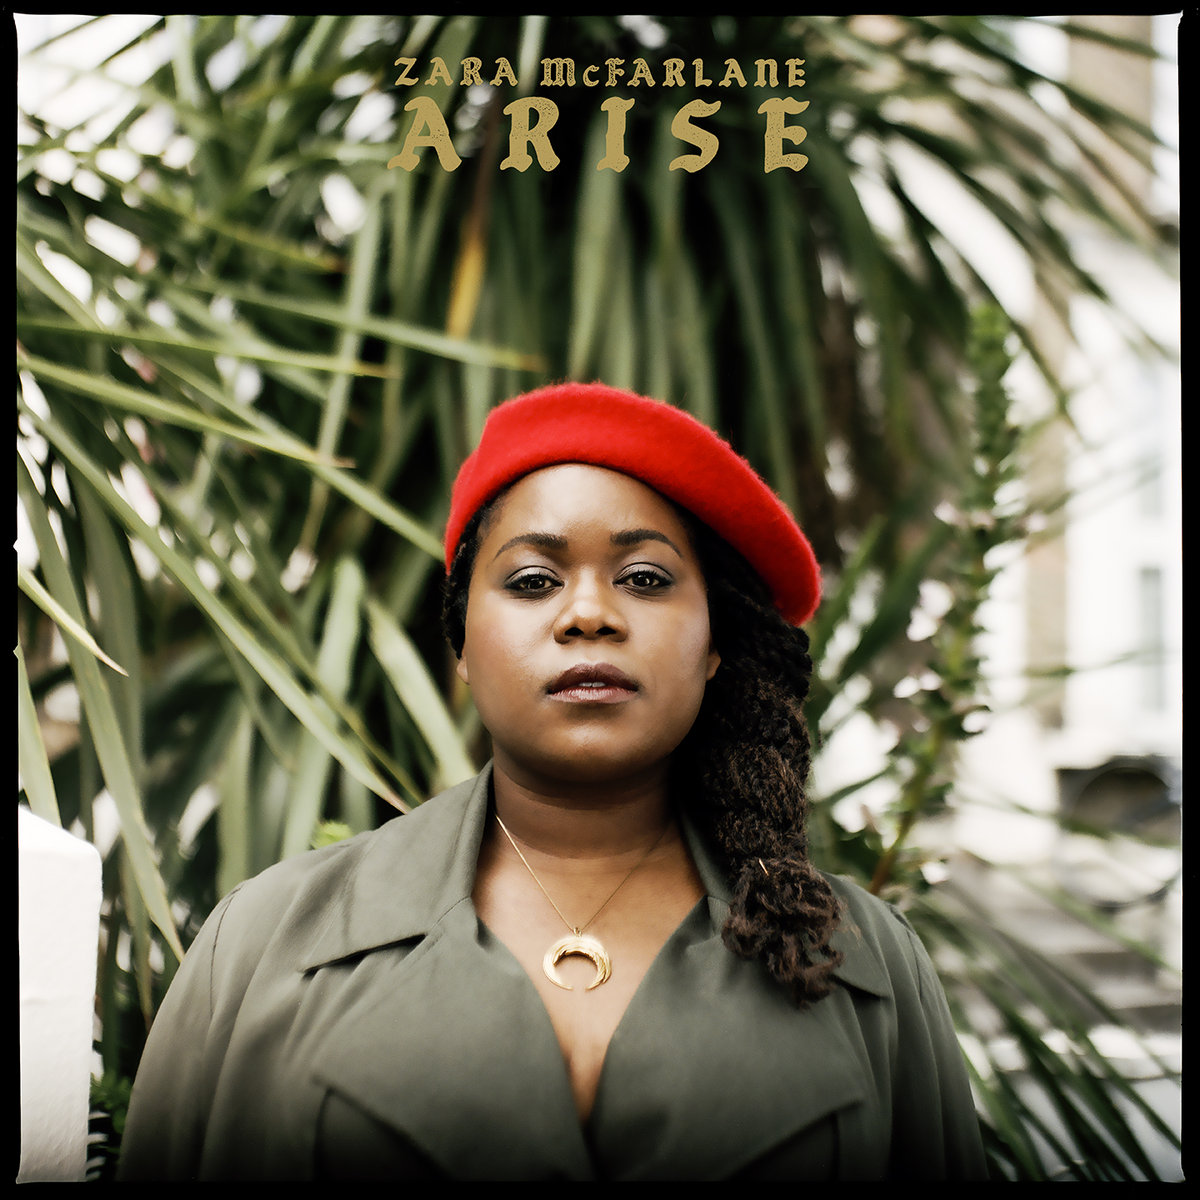 ZARA MCFARLANE - ARISE (BROWNSWOOD RECORDINGS, 2017)